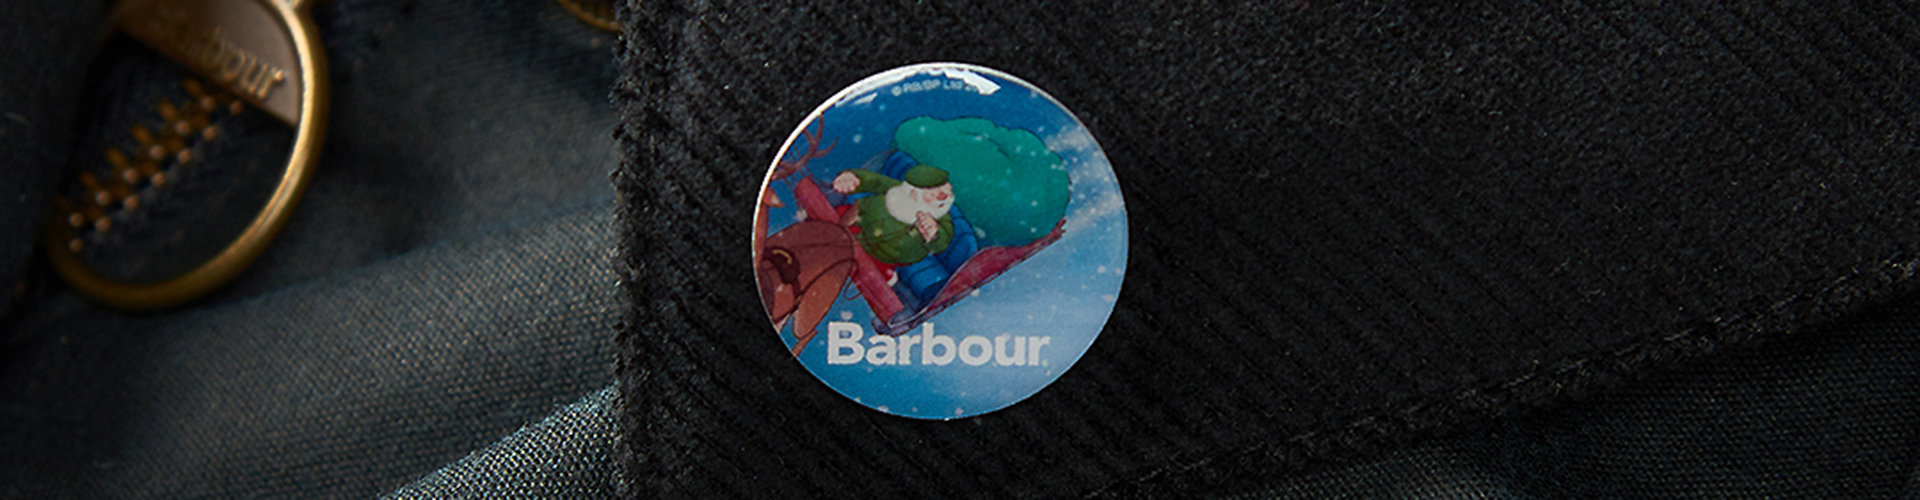 Barbour Christmas Pin Badge